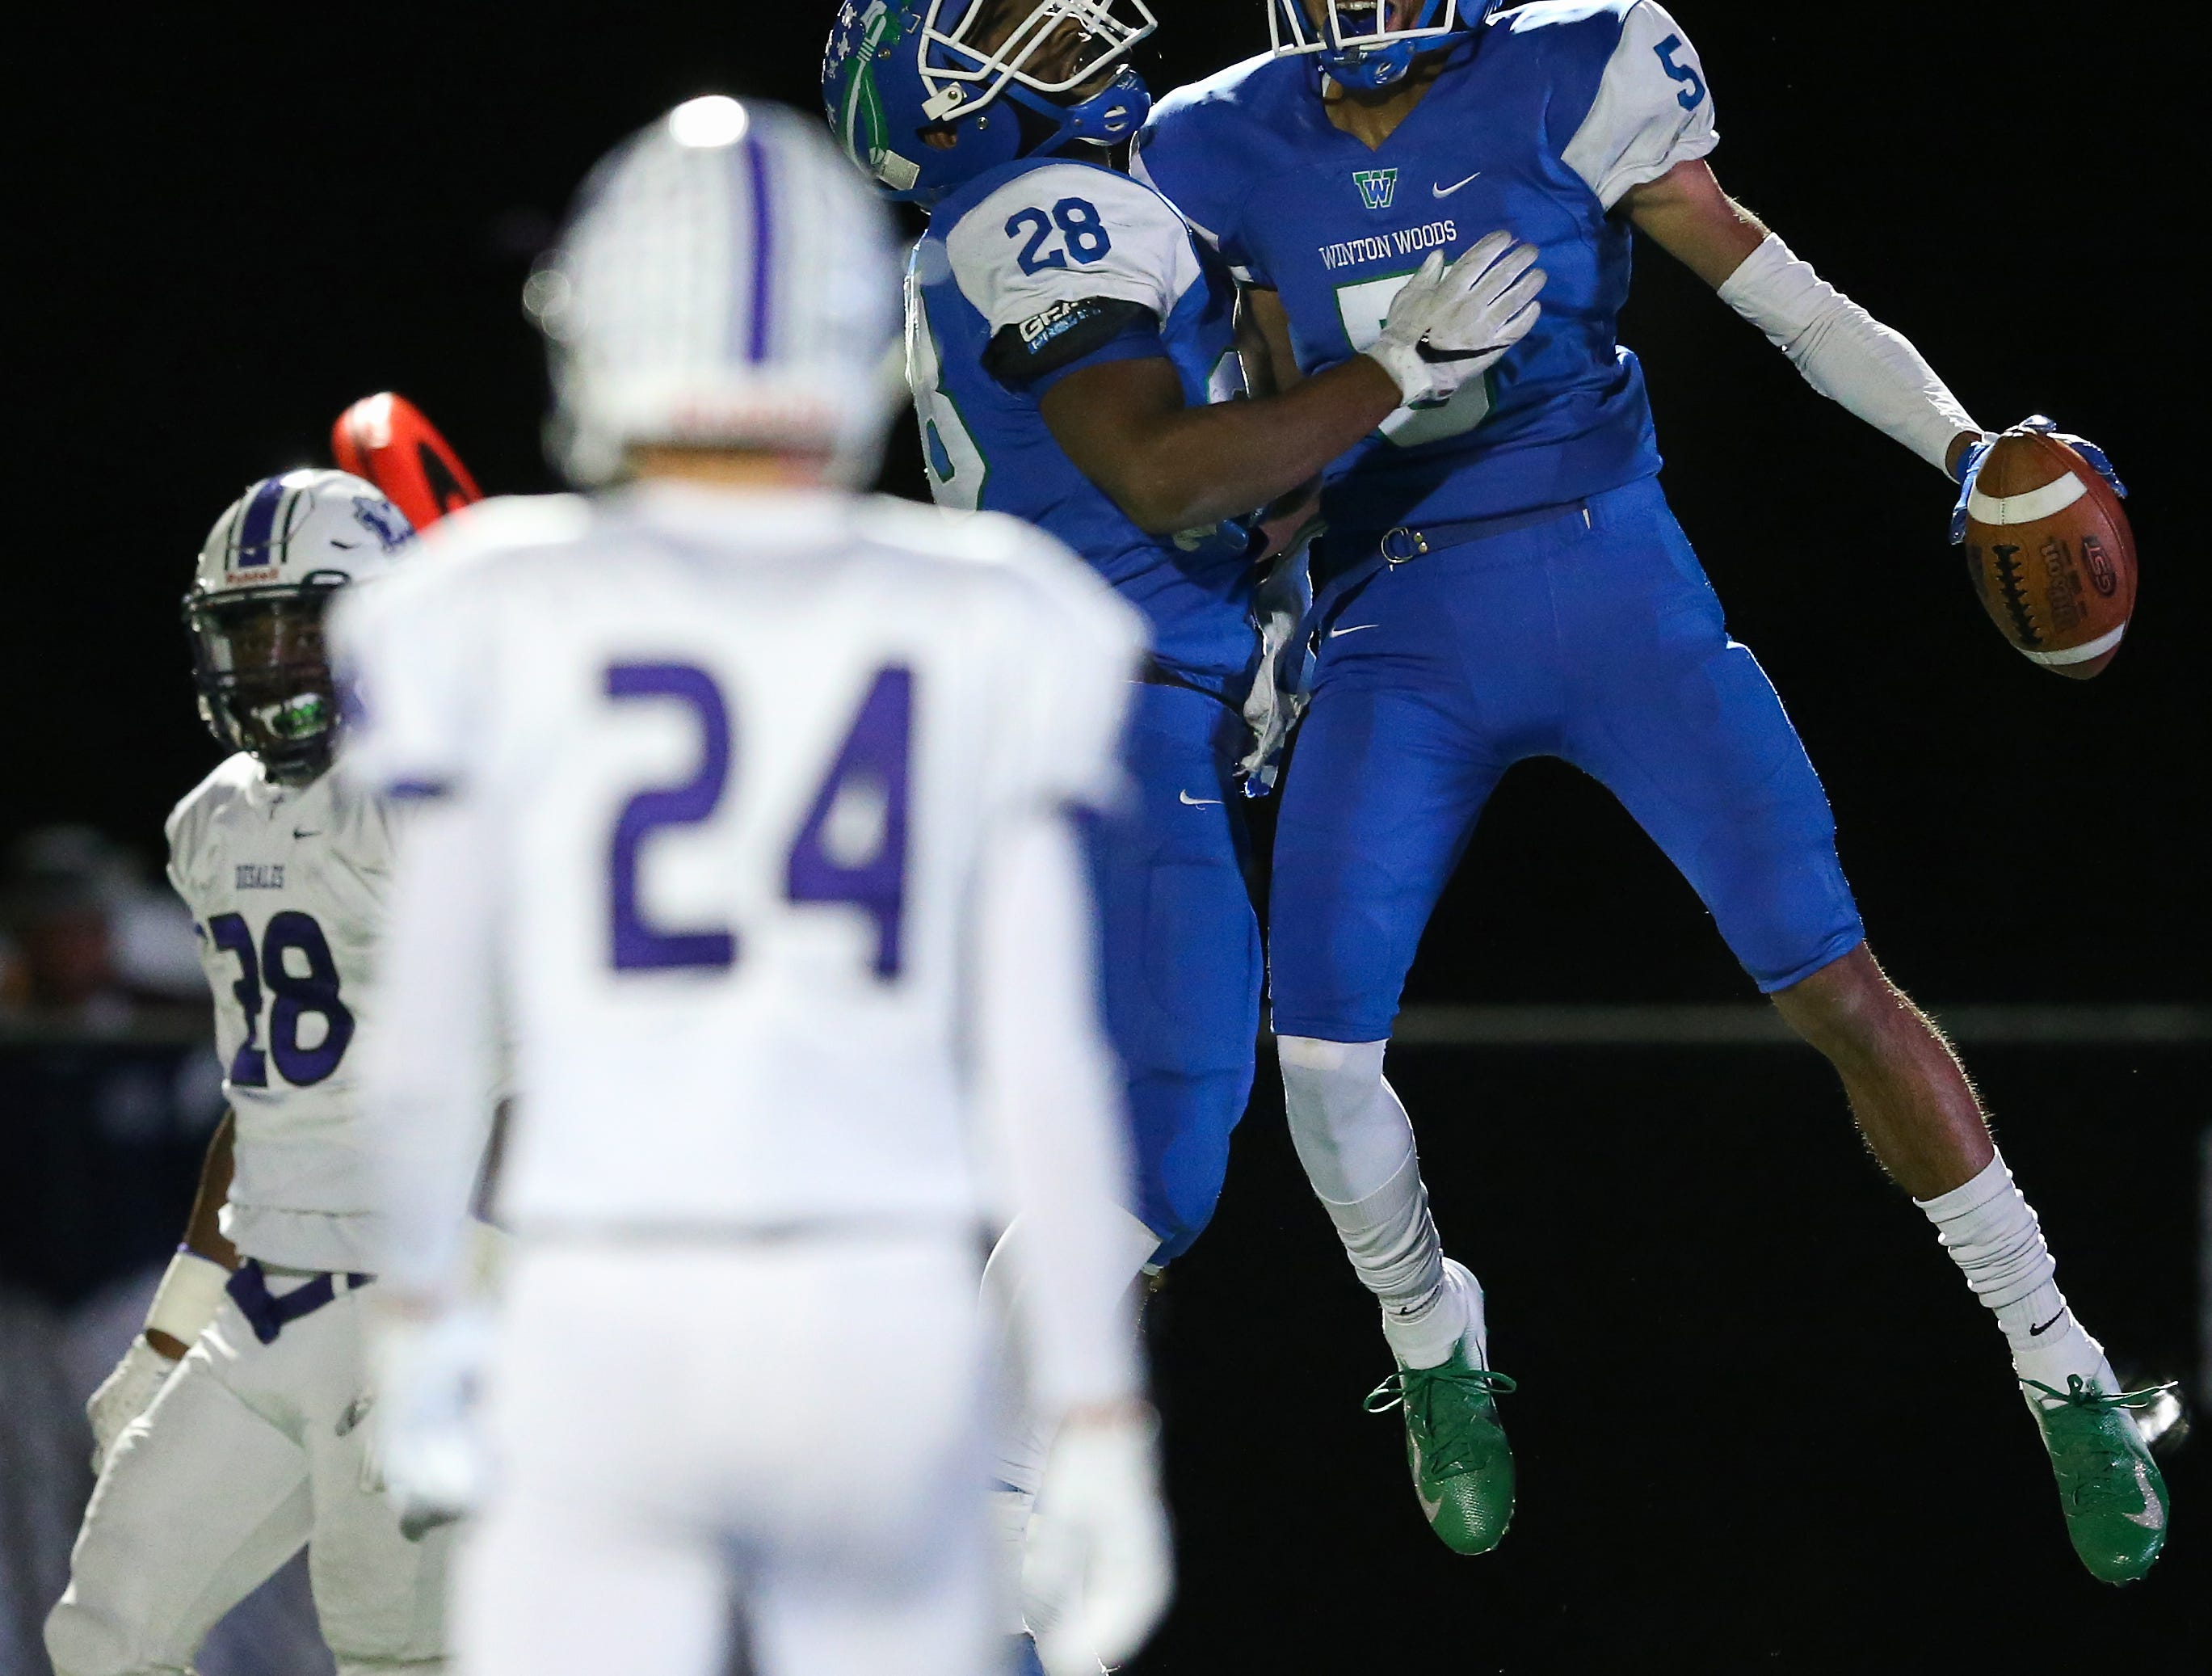 Winton Woods Warriors wide receiver Rashaun Brown (5), far right, celebrates a touchdown catch with running back Miyan Williams (28) in the second quarter during a high school football game between St. Francis de Sales and Winton Woods, Friday, Oct. 19, 2018, at Winton Woods High School in Forest Park, Ohio.